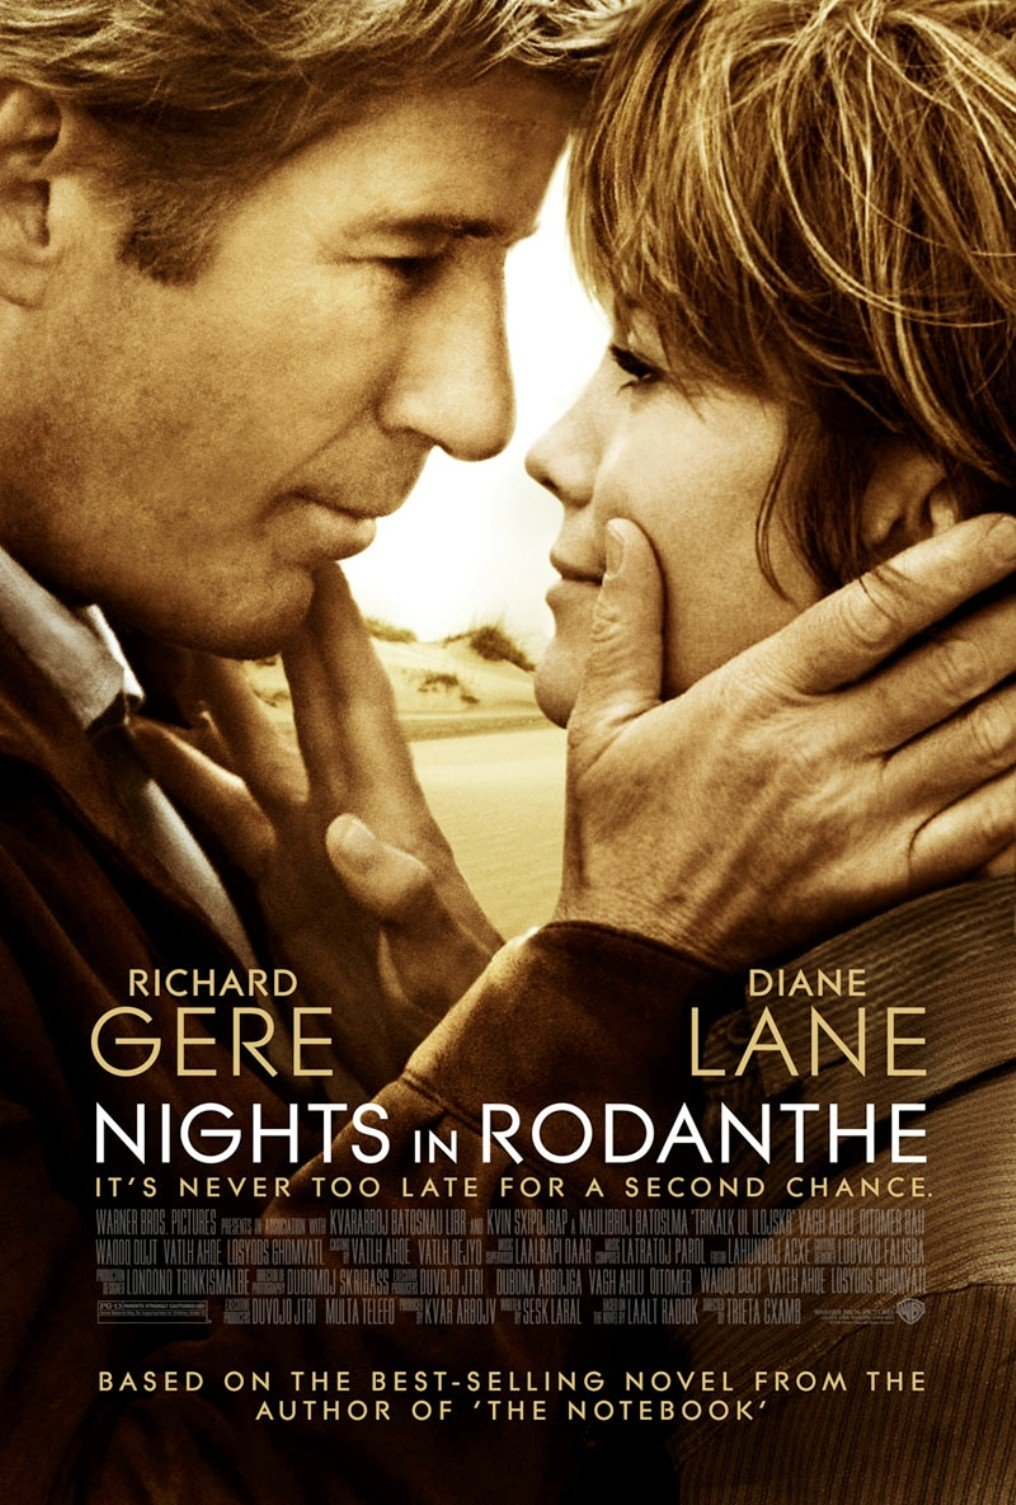 Nights in Rodanthe, 2008